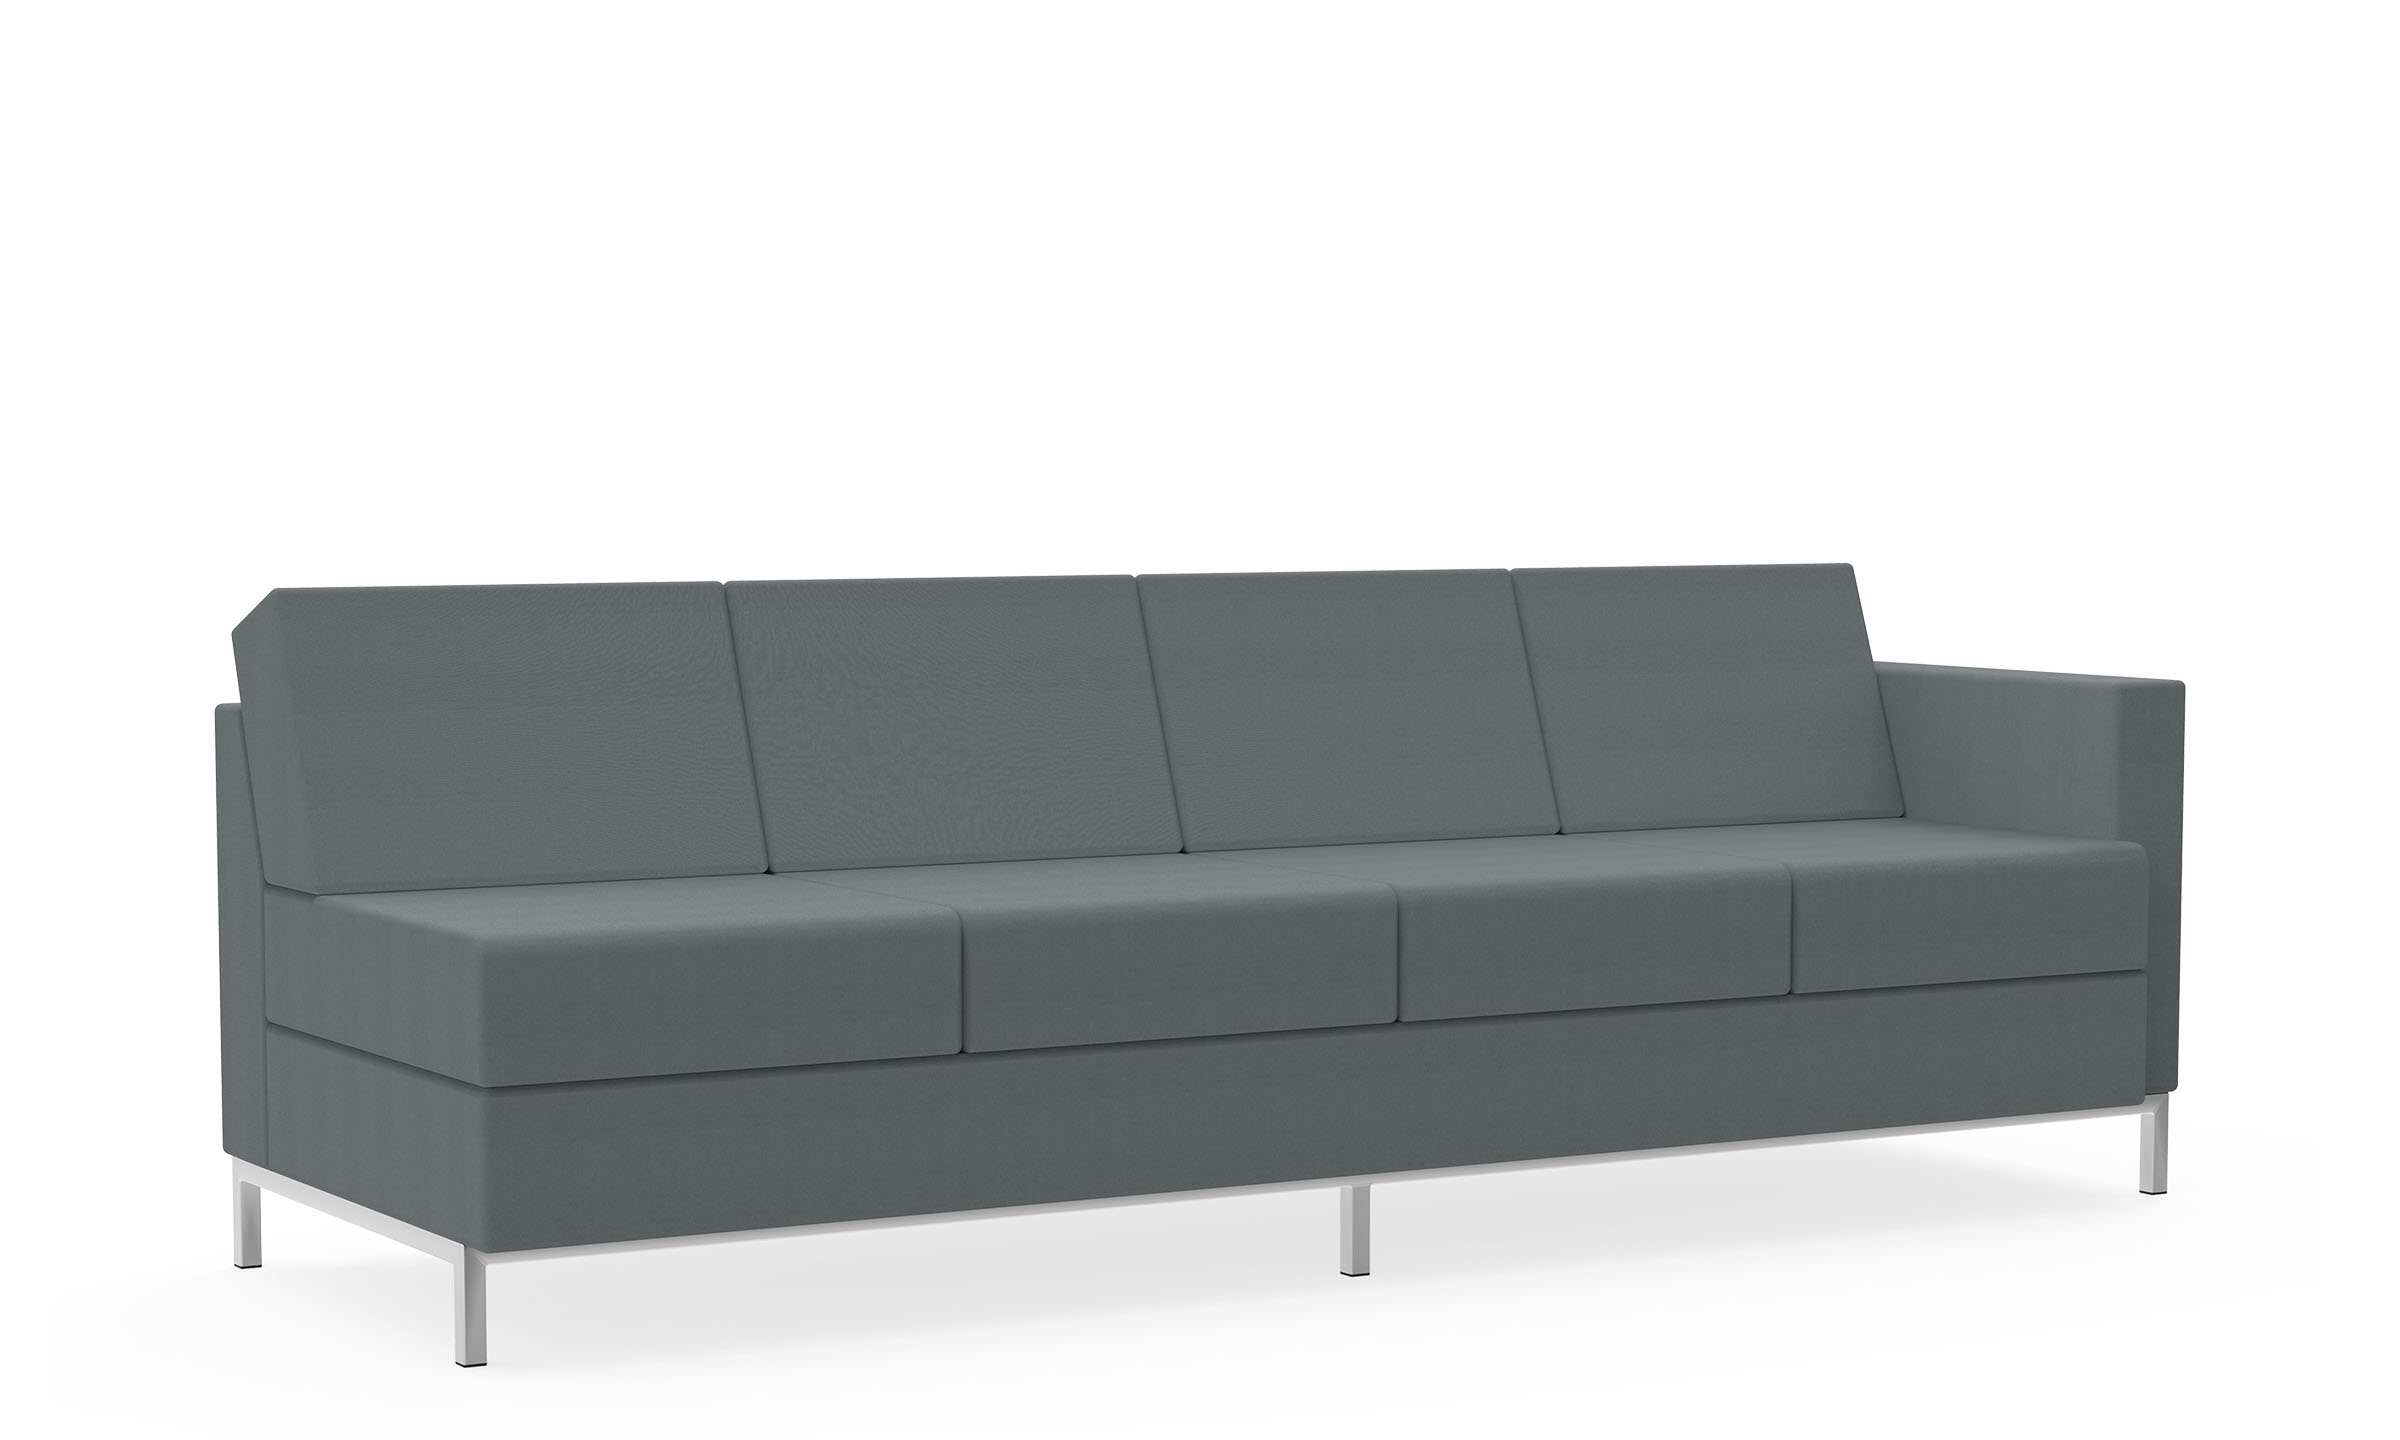 Four-Seat Sofa, Left Arm Model Thumbnail